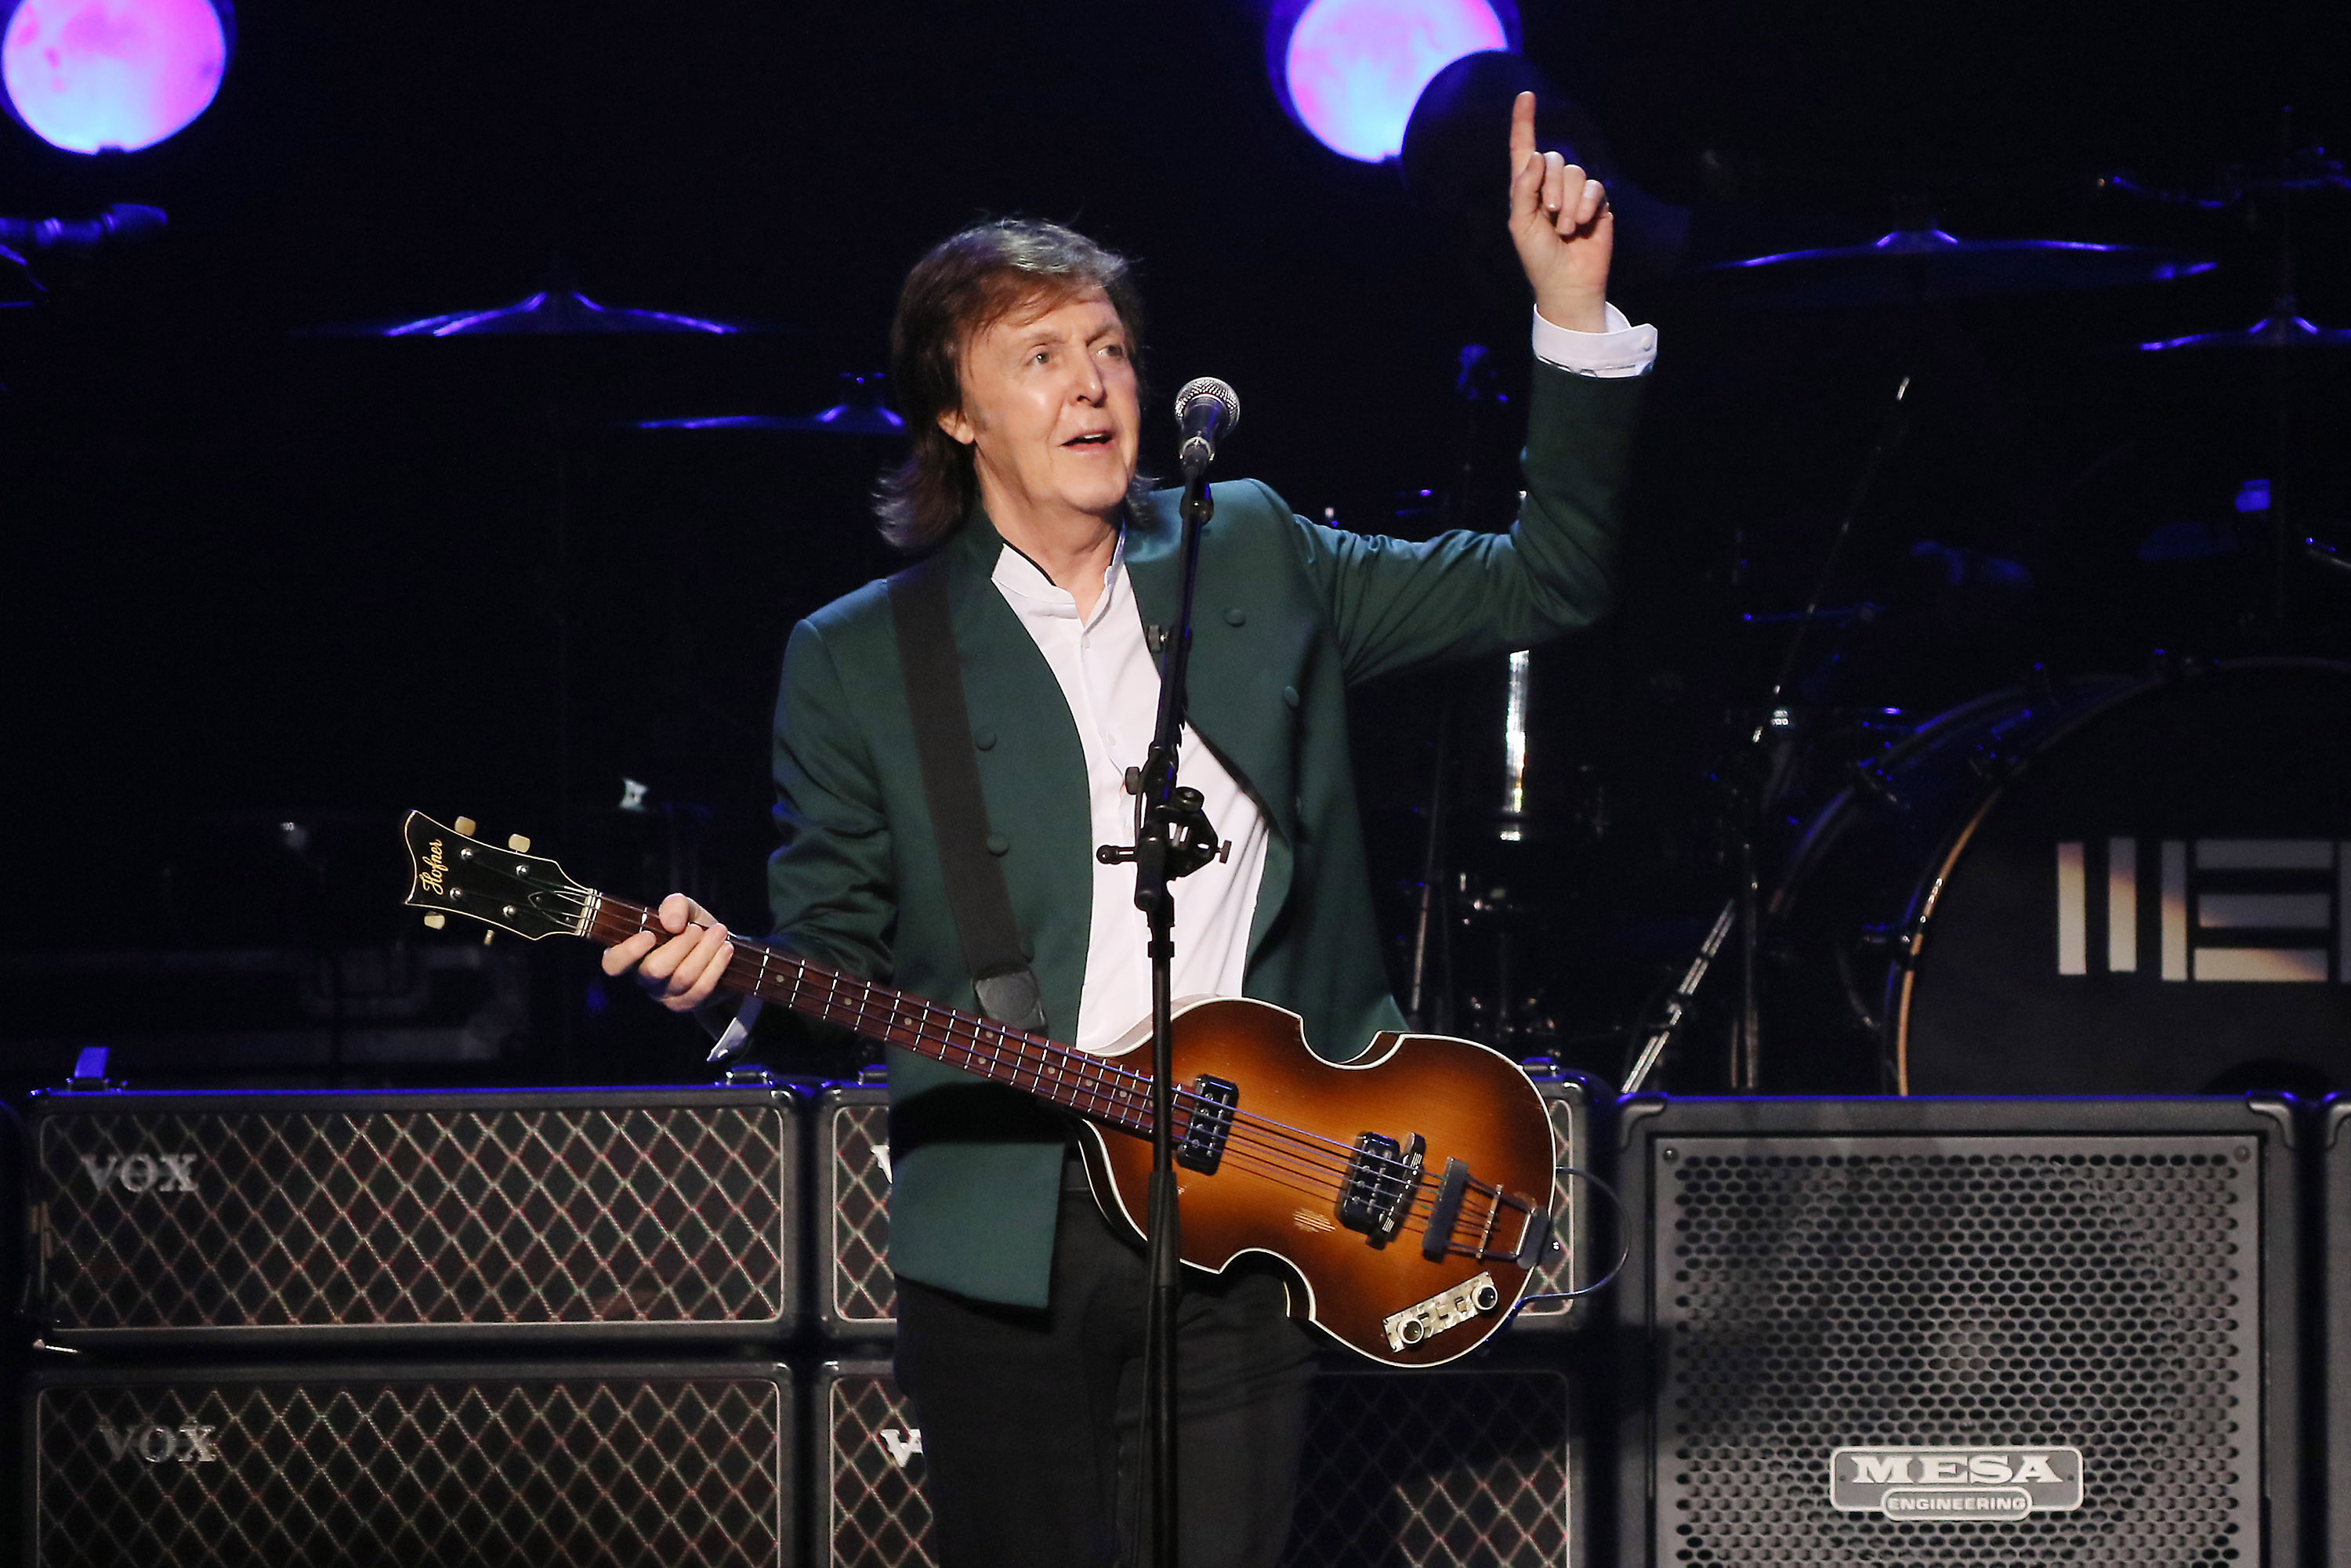 Paul McCartney performs live at the Budokan on April 28, 2015 in Tokyo.